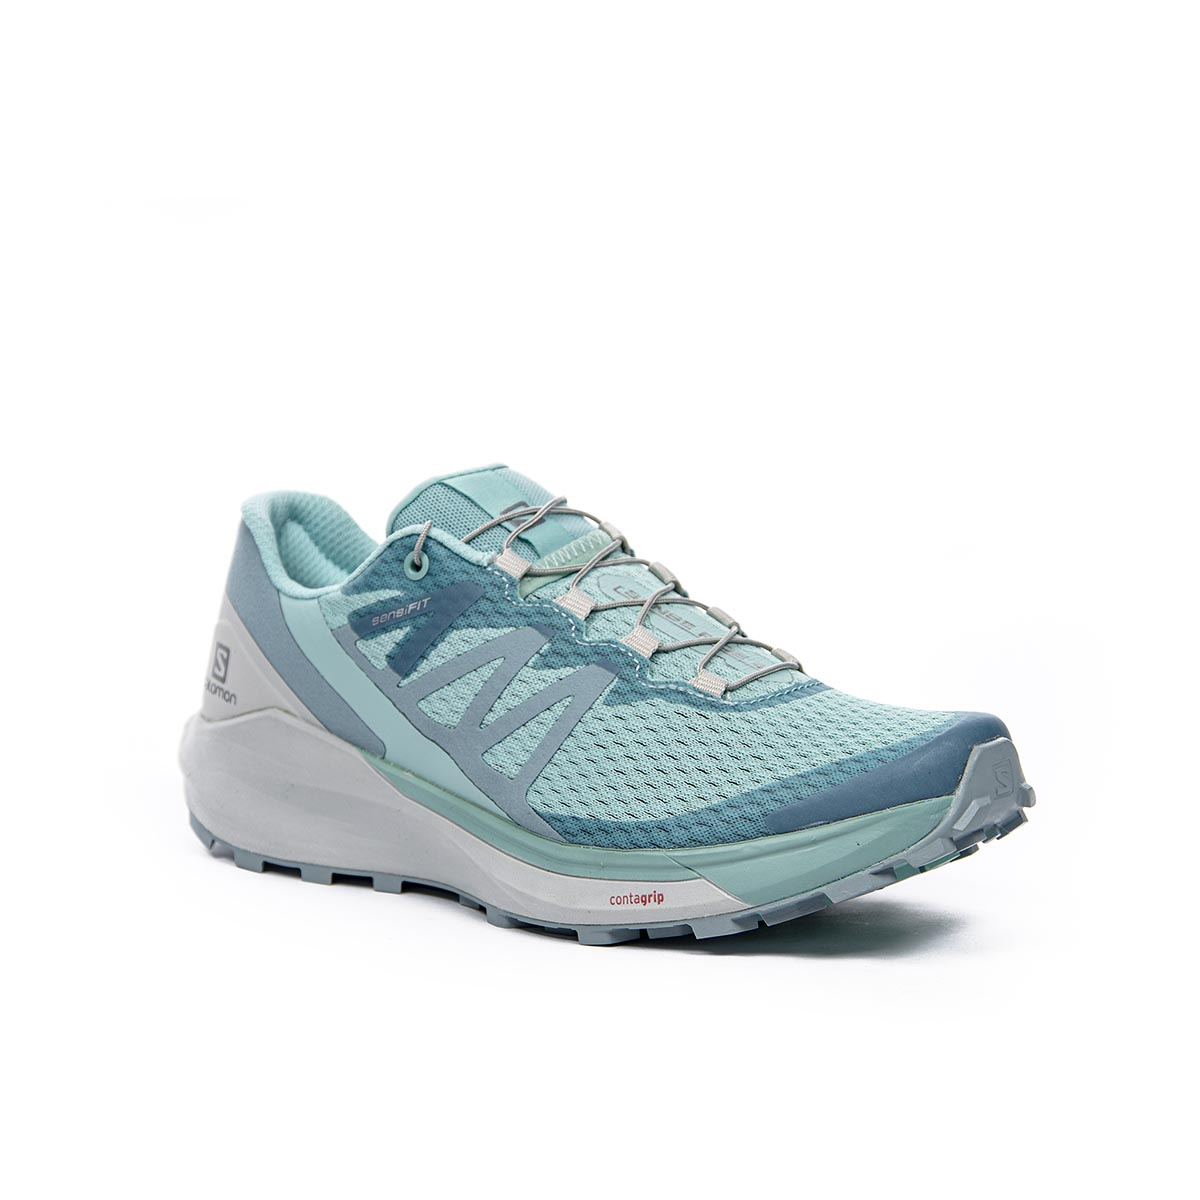 SALOMON - SENSE RIDE 4 W